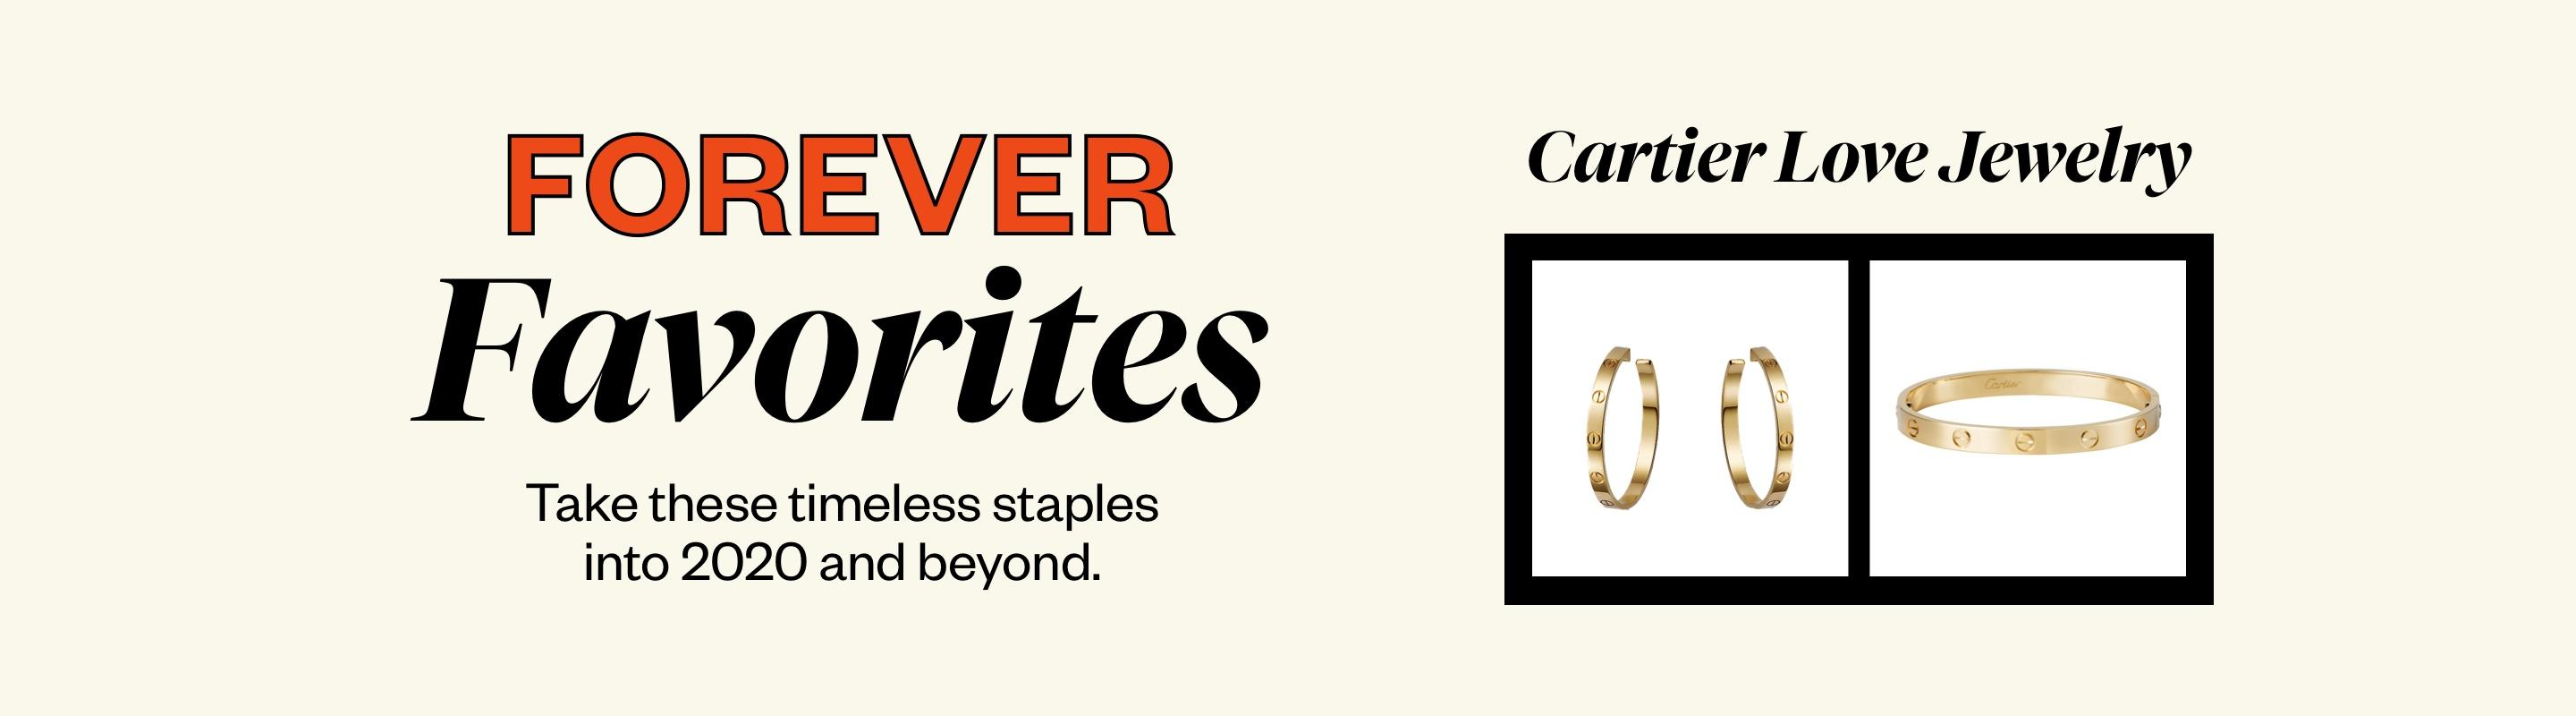 Forever Favorites: Cartier Love Jewelry